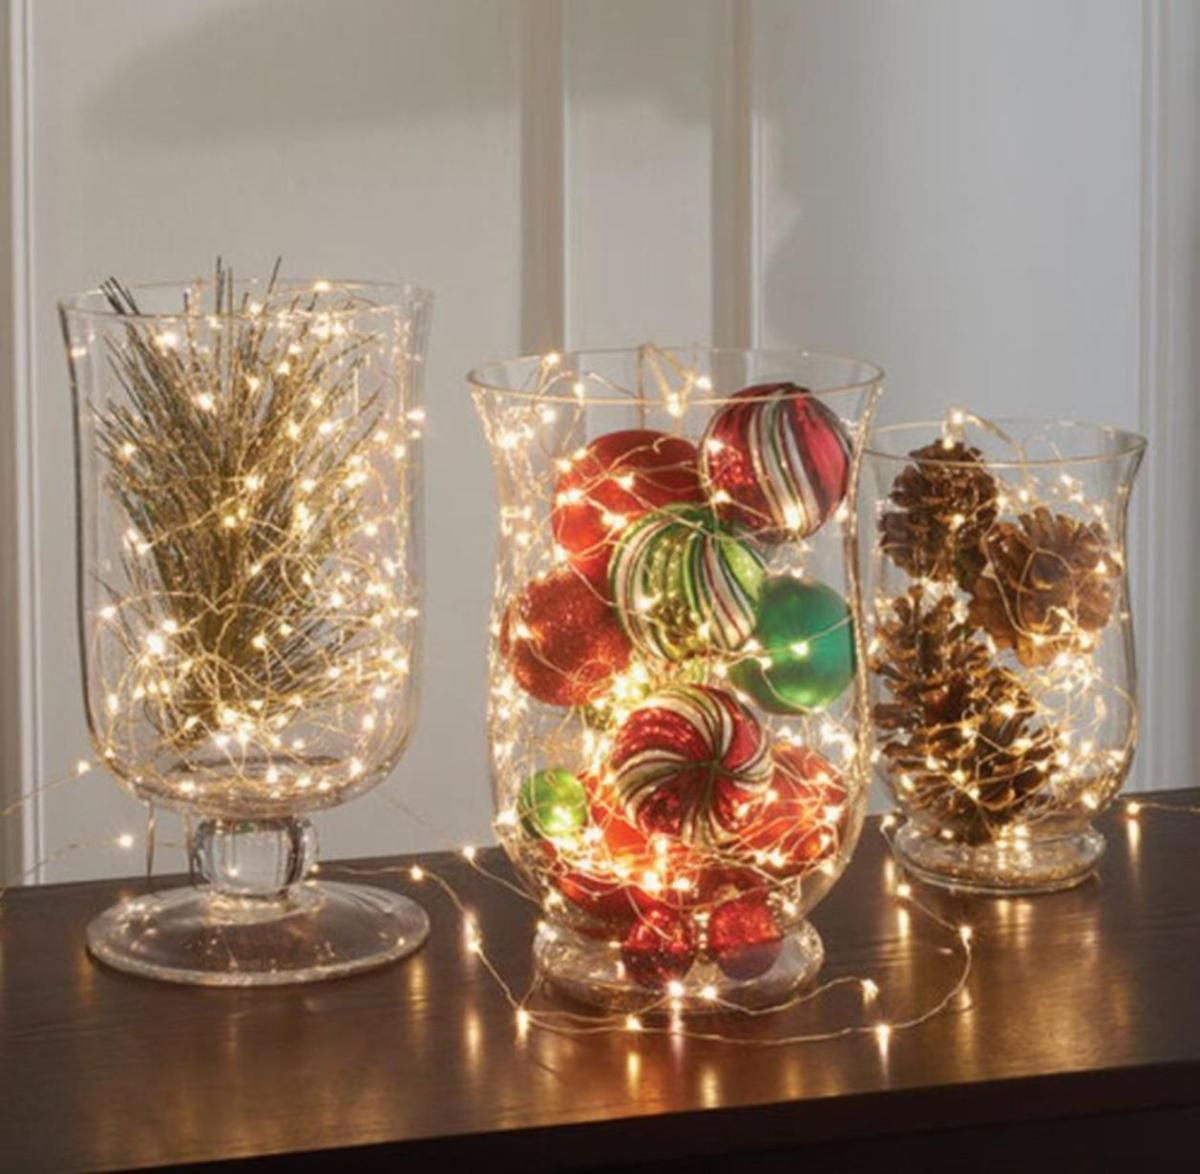 Best Creative Diy Christmas Table Centerpieces Ideas 26 Decorating With Christmas Lights Christmas Centerpieces Christmas Centerpieces Diy